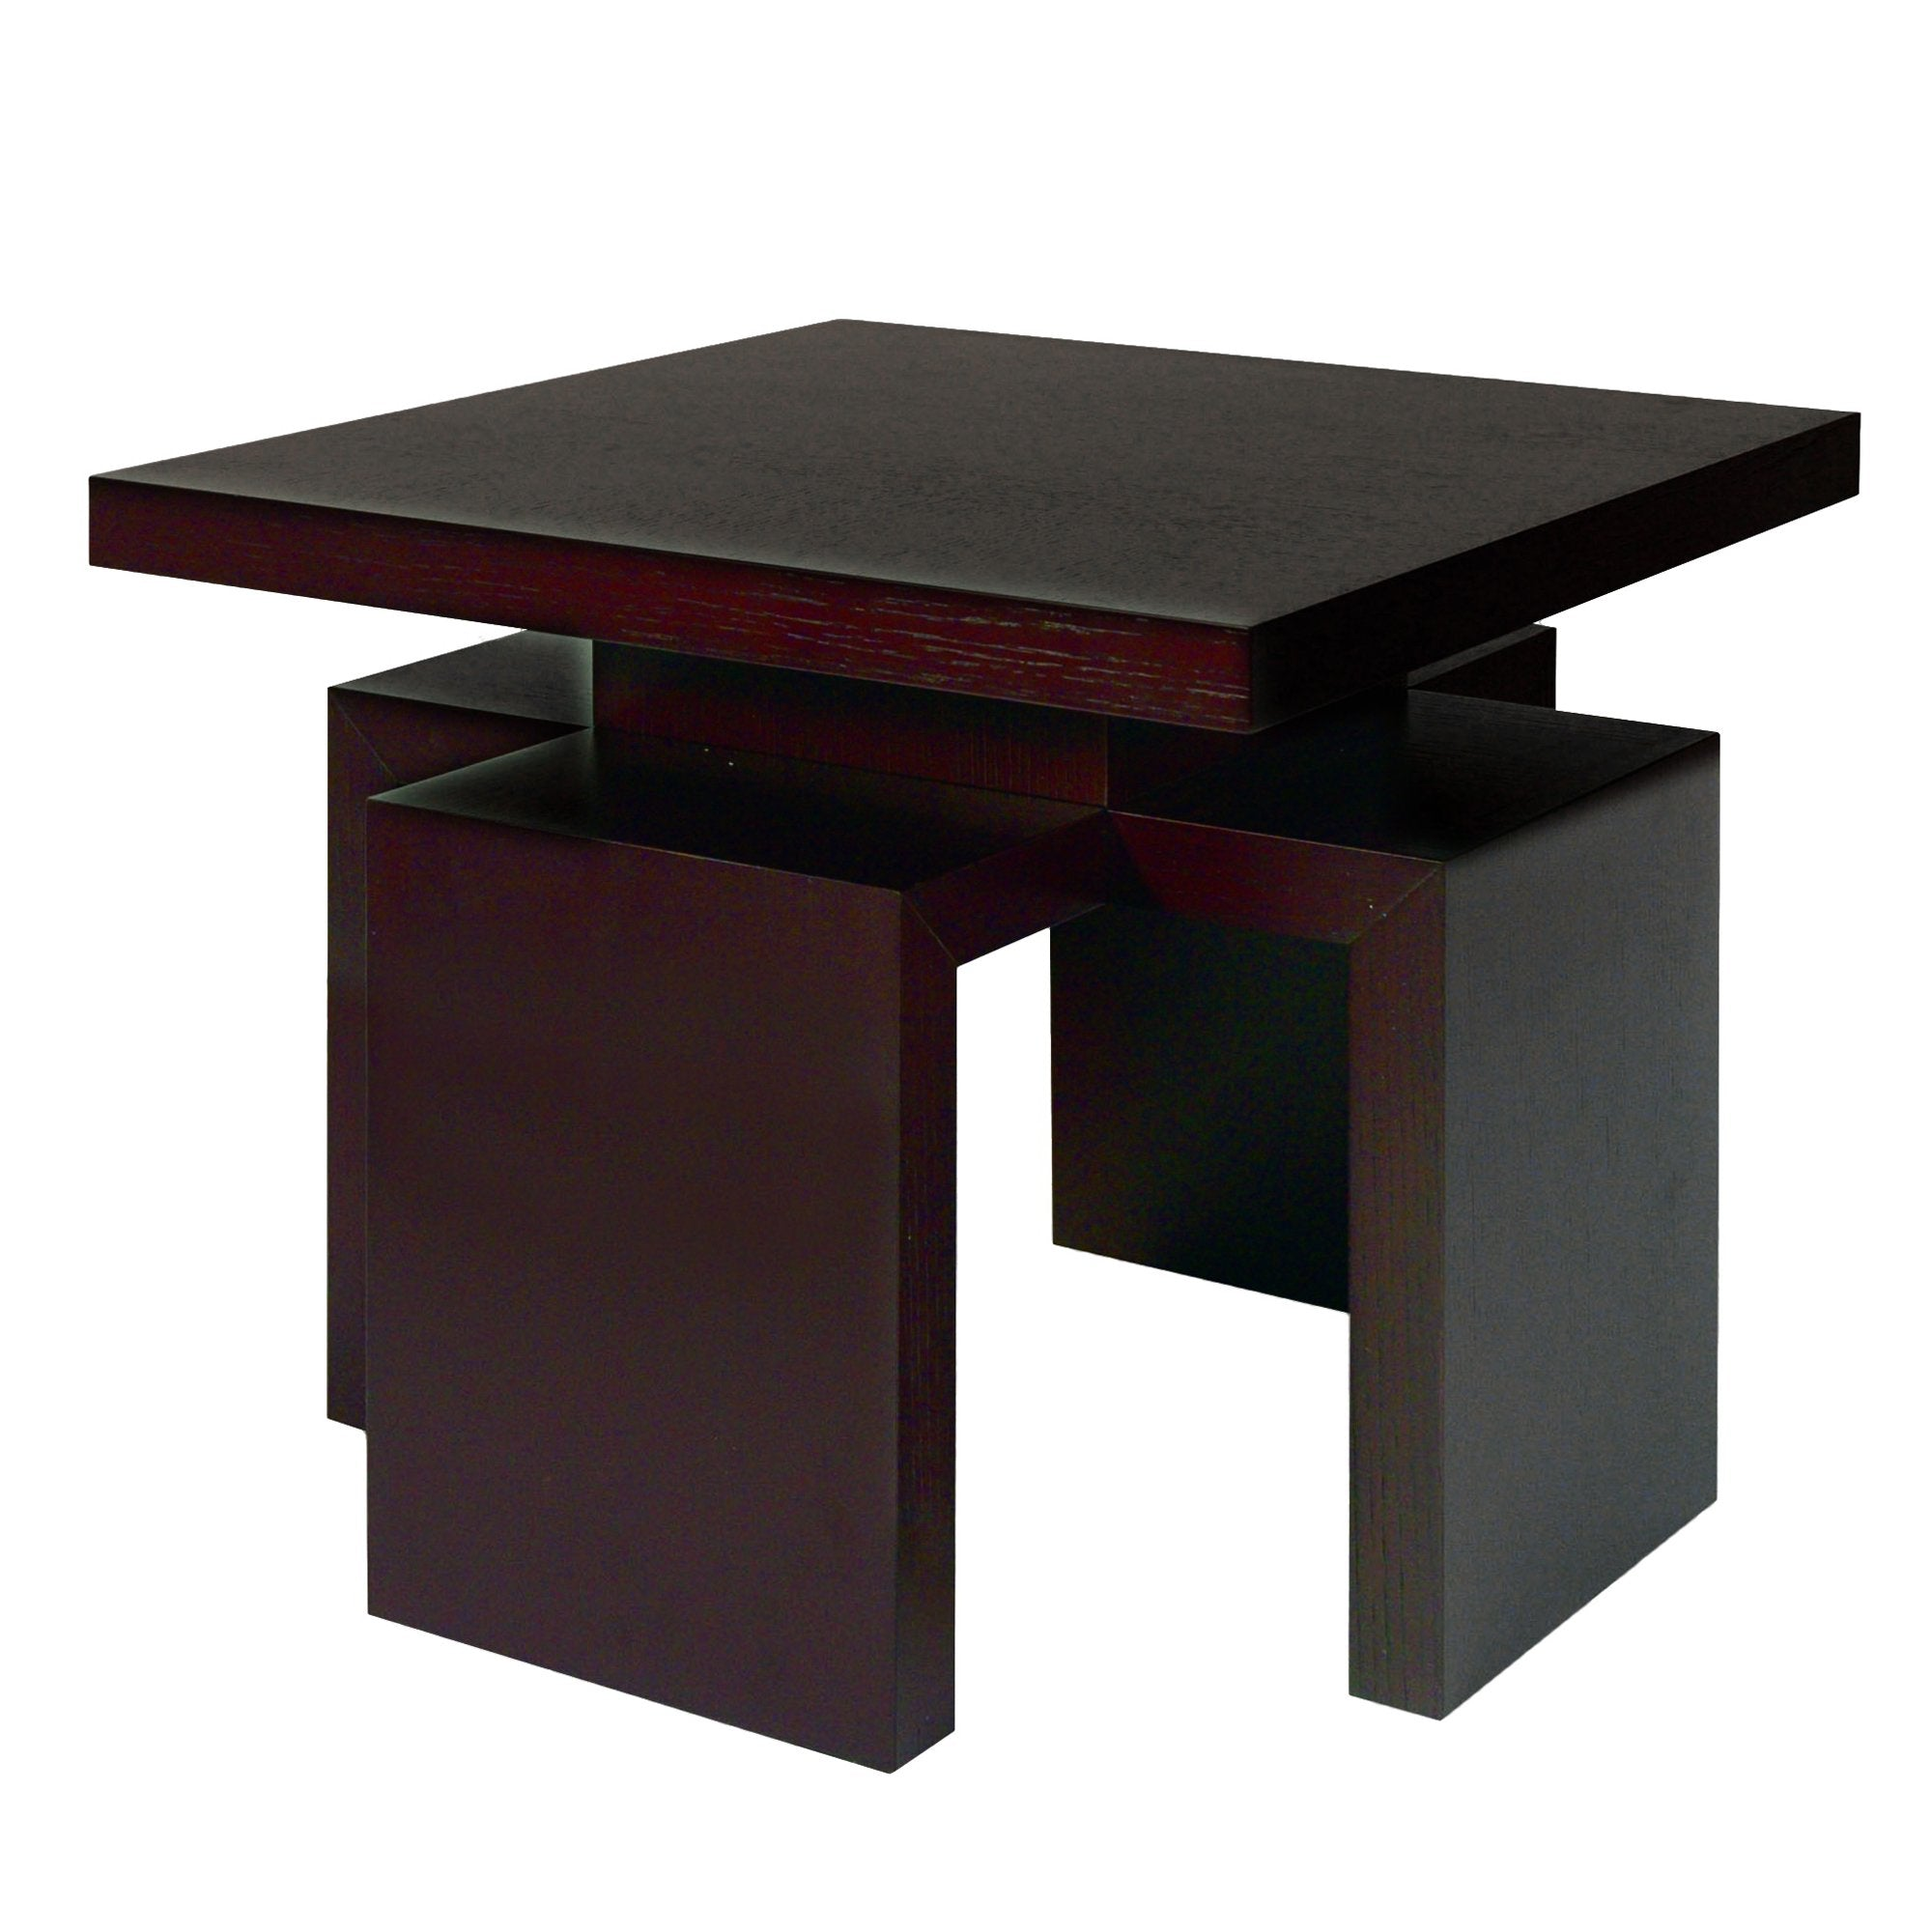 Sebring Square End Table